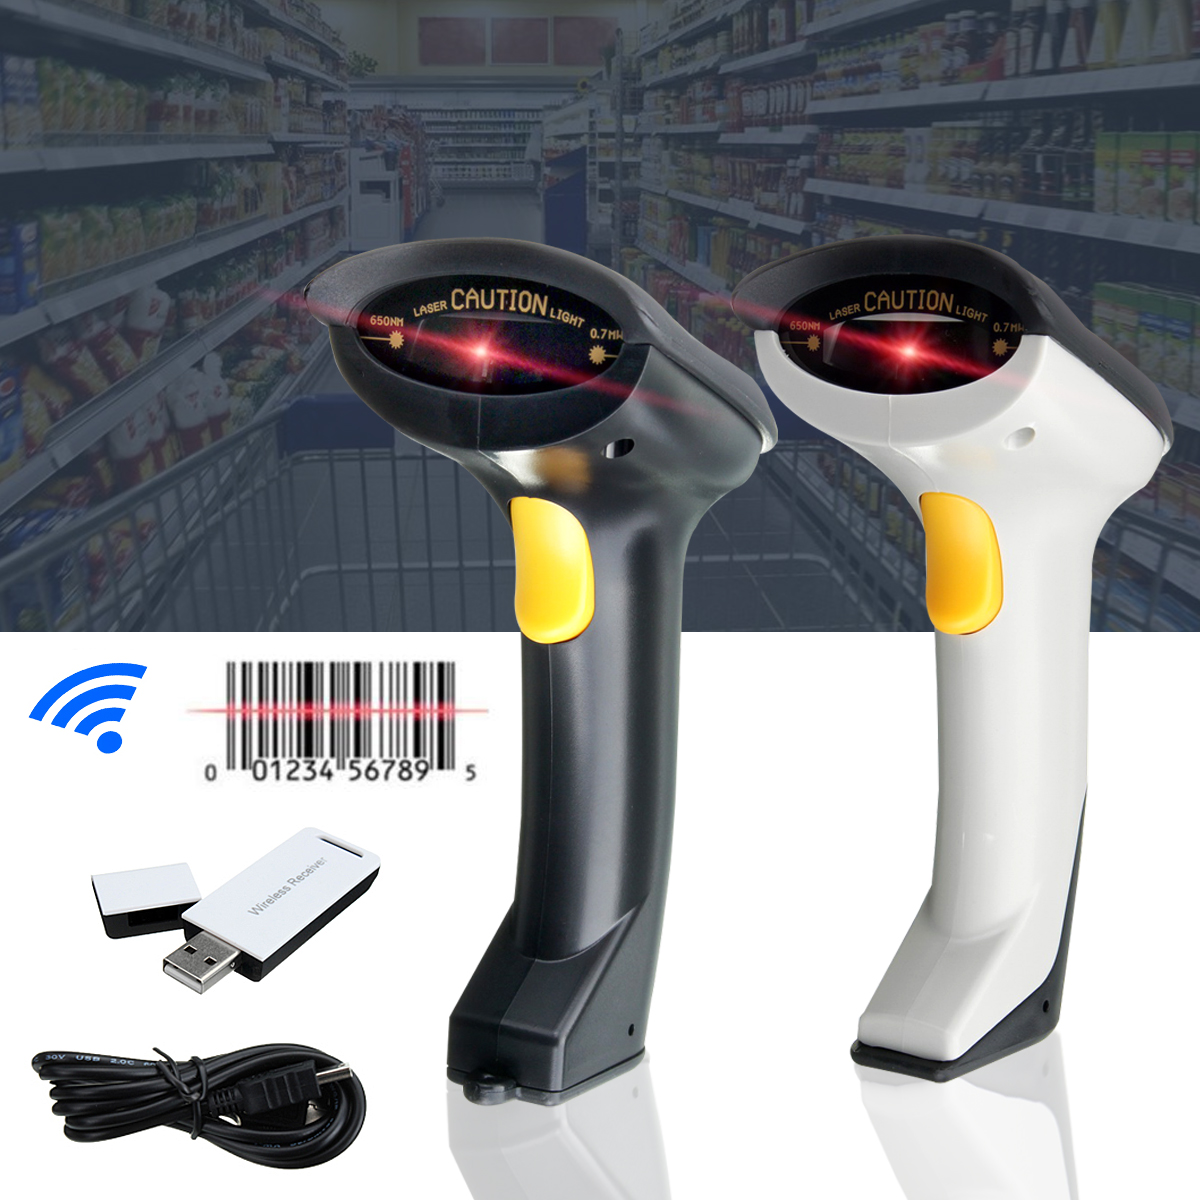 LEORY Portable Wireless Barcode Scanner Handheld USB Laser Scan 2.4Ghz Bar Code Reader